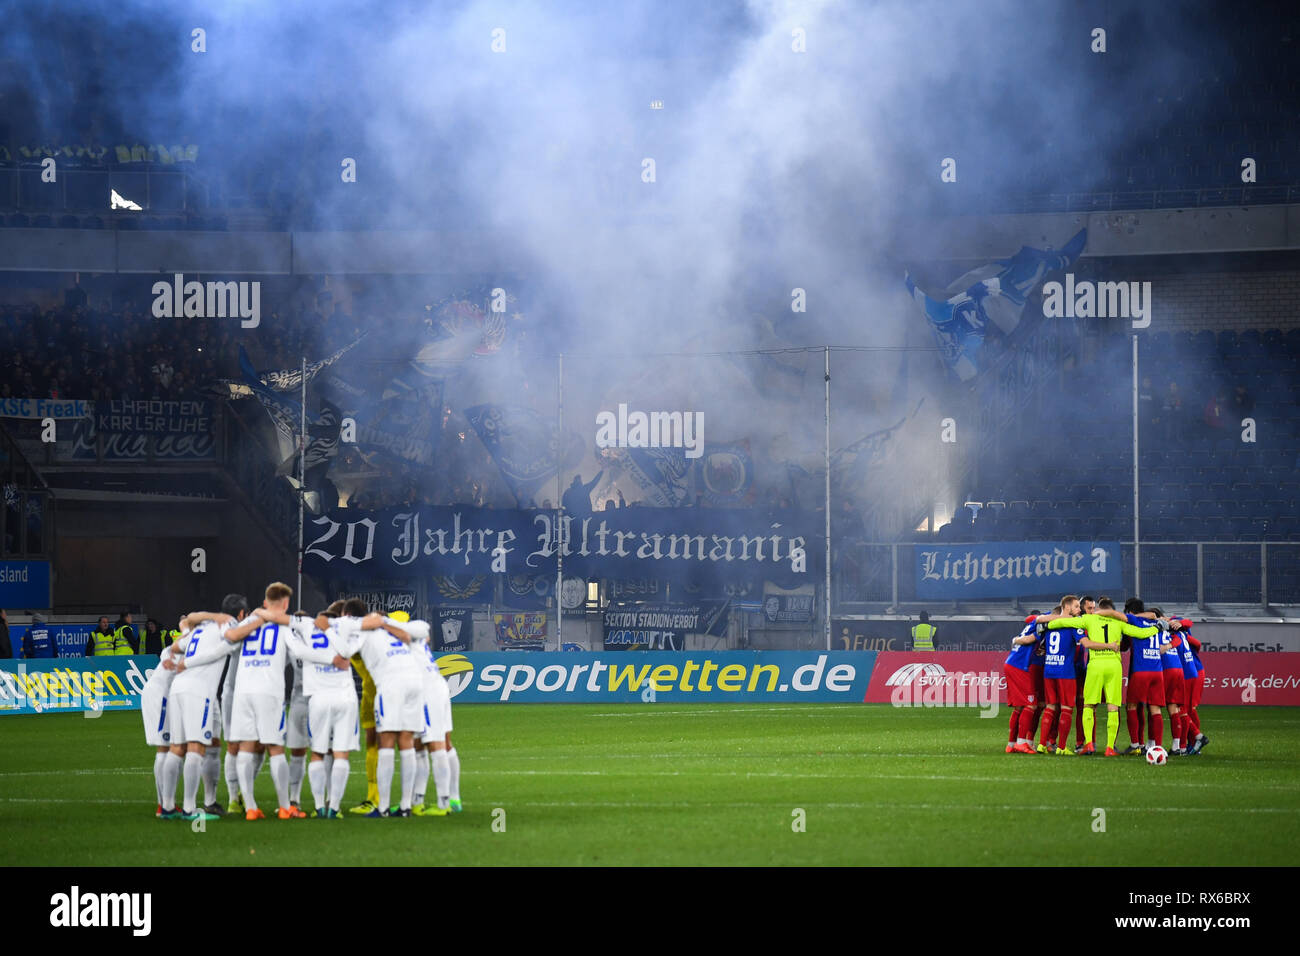 Karlsruhe fans ending Pyro. GES / football / 3rd league: Krefelder football club Uerdingen - Karlsruher SC, 08.03.2019 Football / Soccer: 3rd League: KFC Uerdingen vs Karlsruher SC, Duisburg, March 8, 2019 | usage worldwide - Stock Image